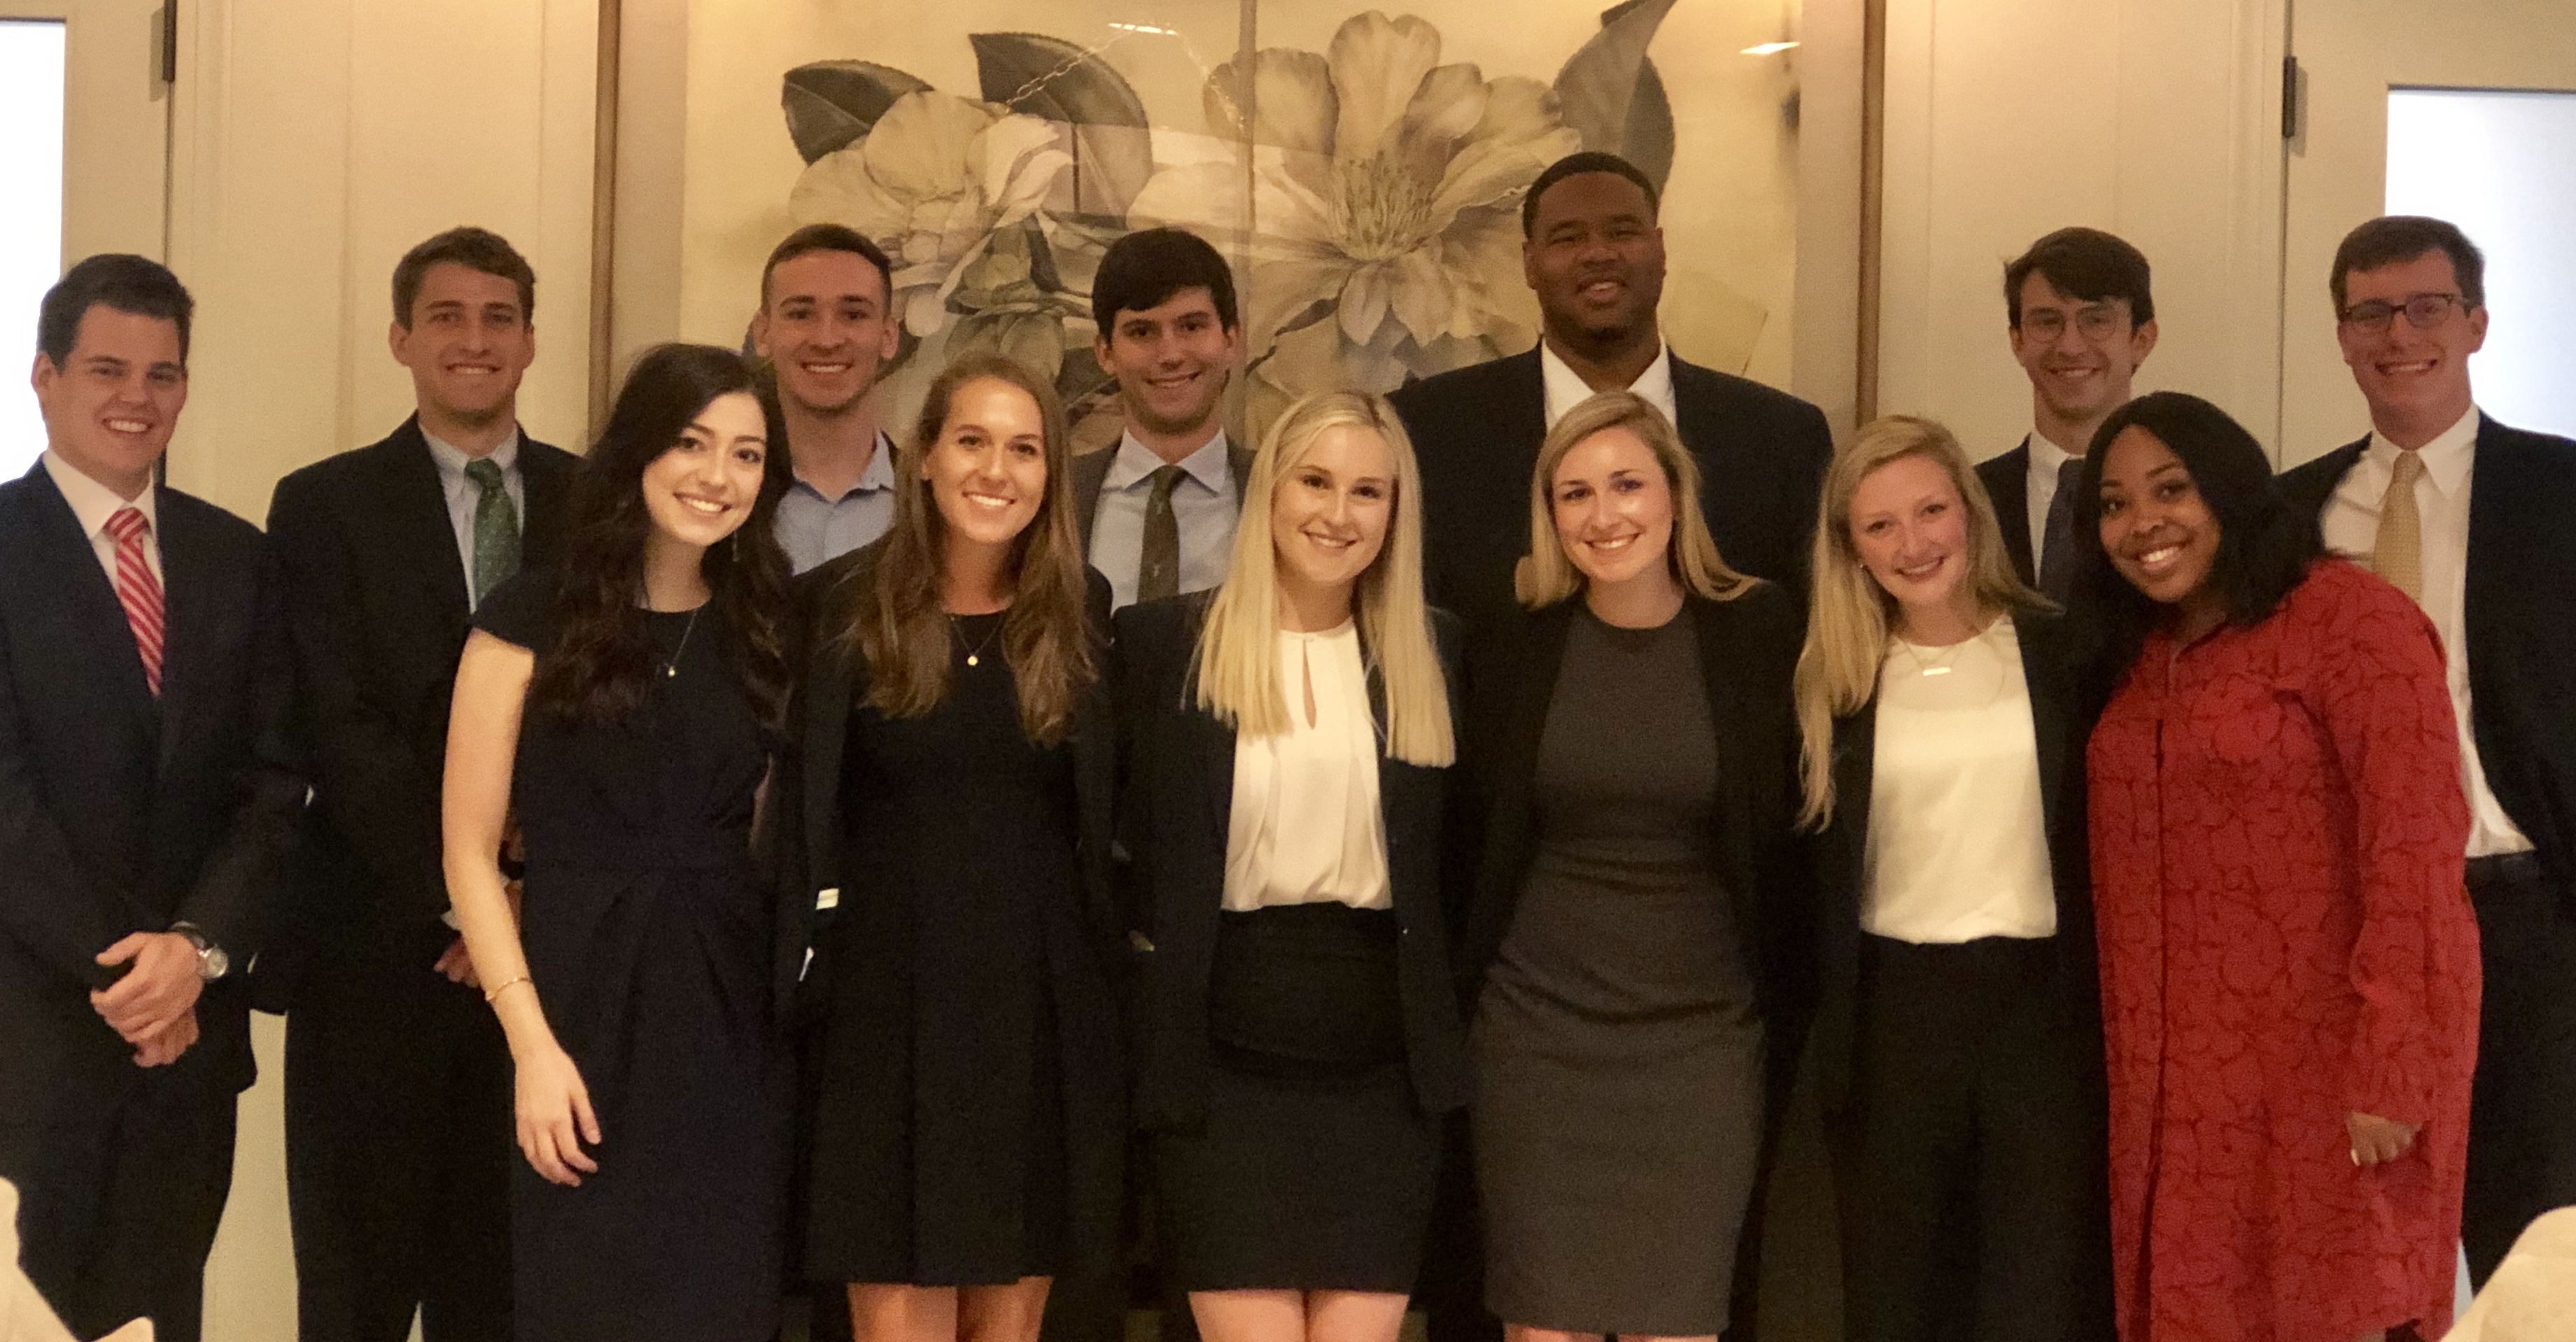 Starnes Davis Florie LLP Welcomes 13 Students to the 2019 Summer Associate Program